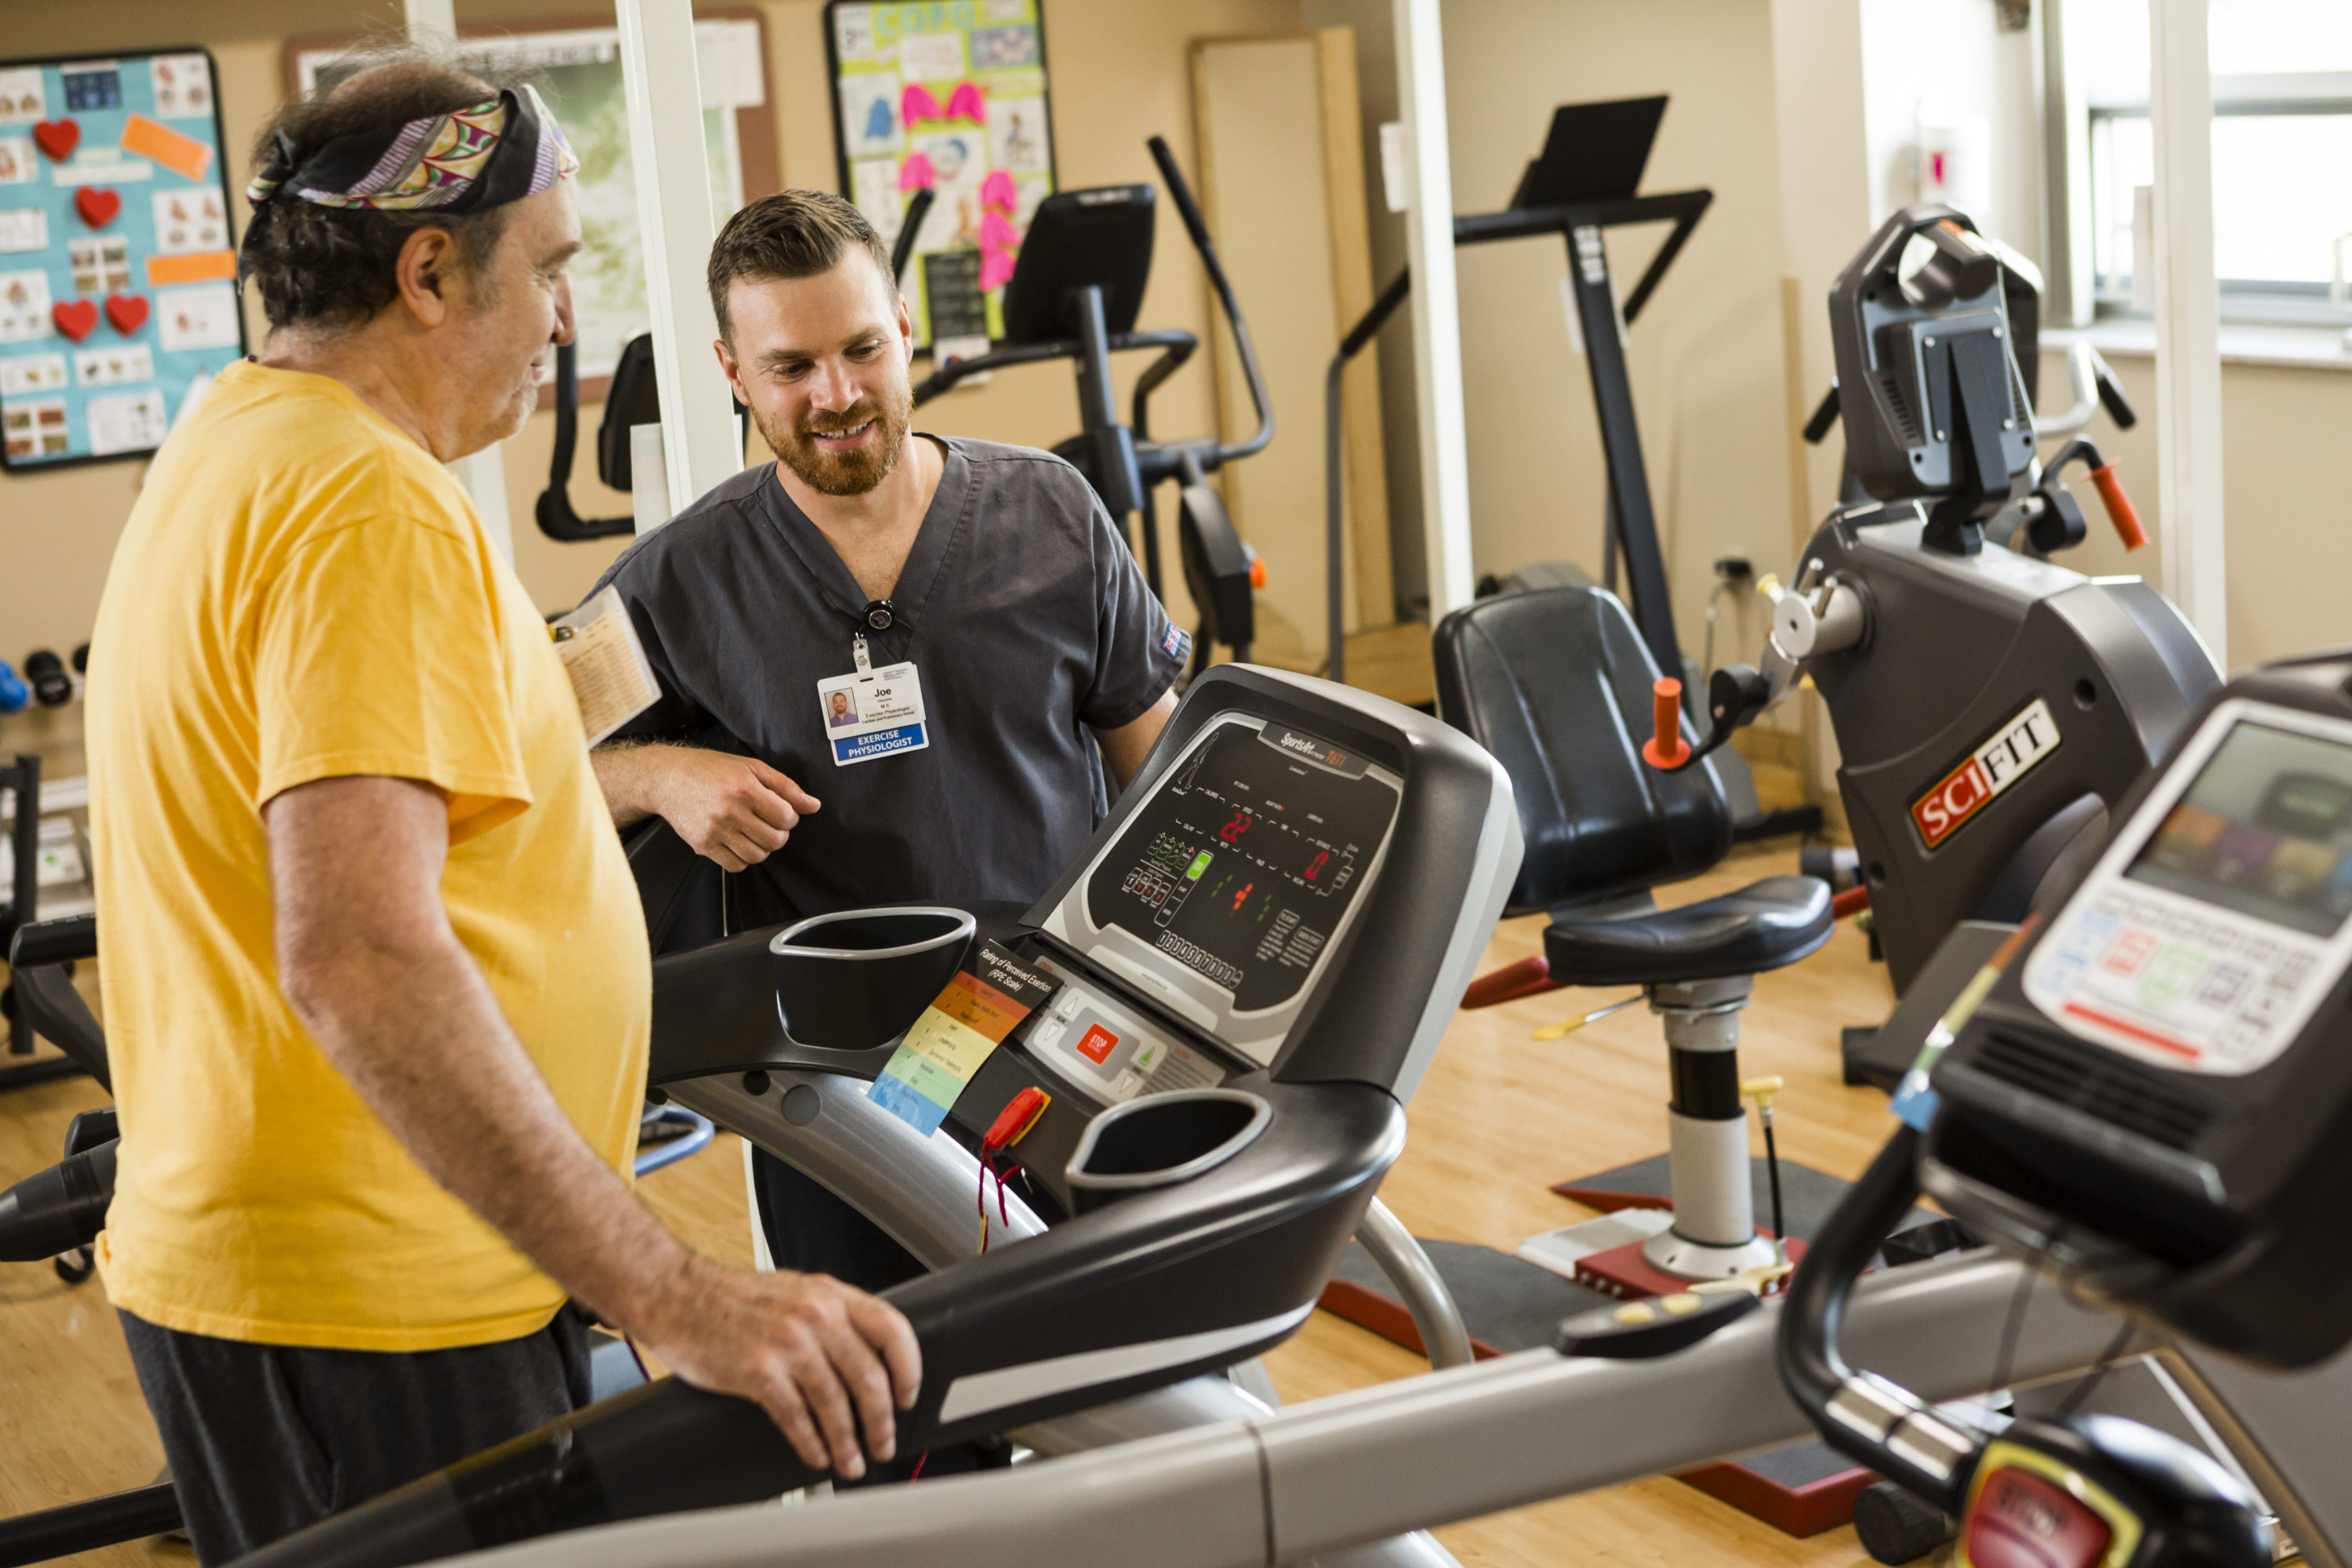 Some components of pulmonary rehabilitation include prescription and  medical equipment assistance, nutrition counseling, tobacco cessation  support, ...